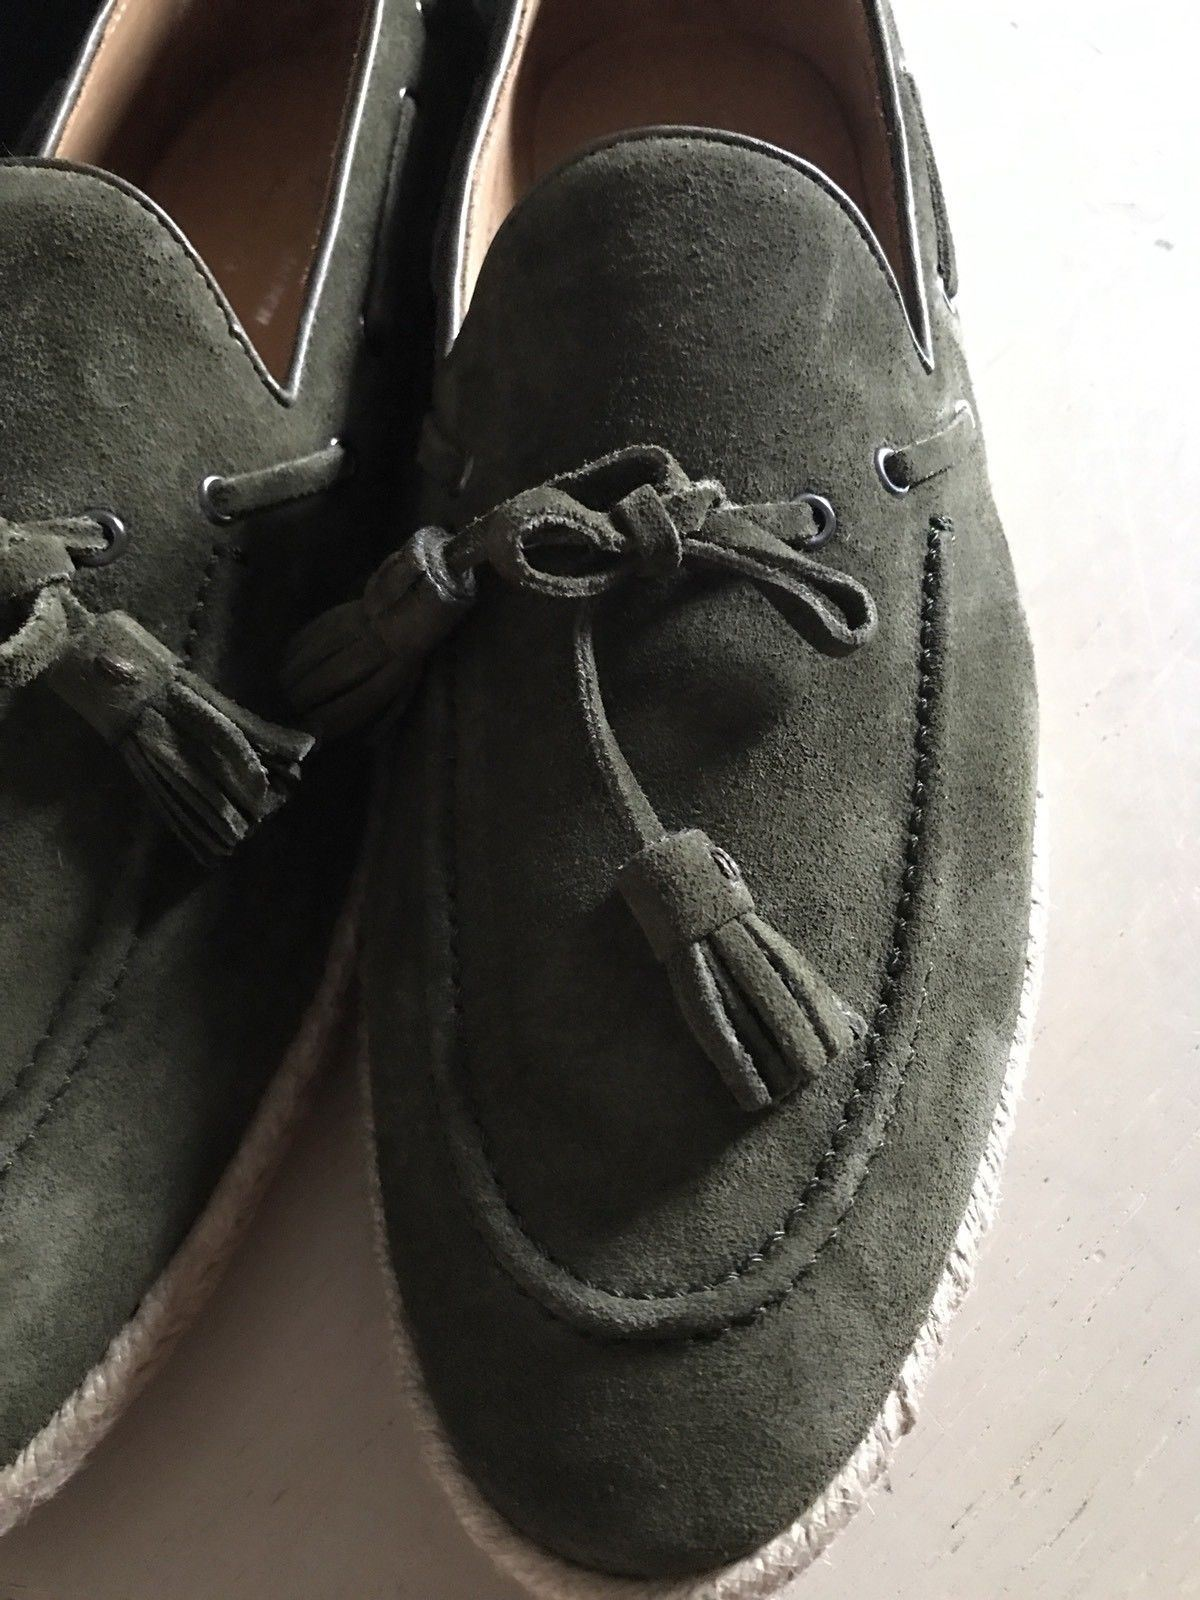 New $495 Men's Ralph Lauren Purple Label Calf Suede Loafers Shoes Green 7.5 US - BAYSUPERSTORE